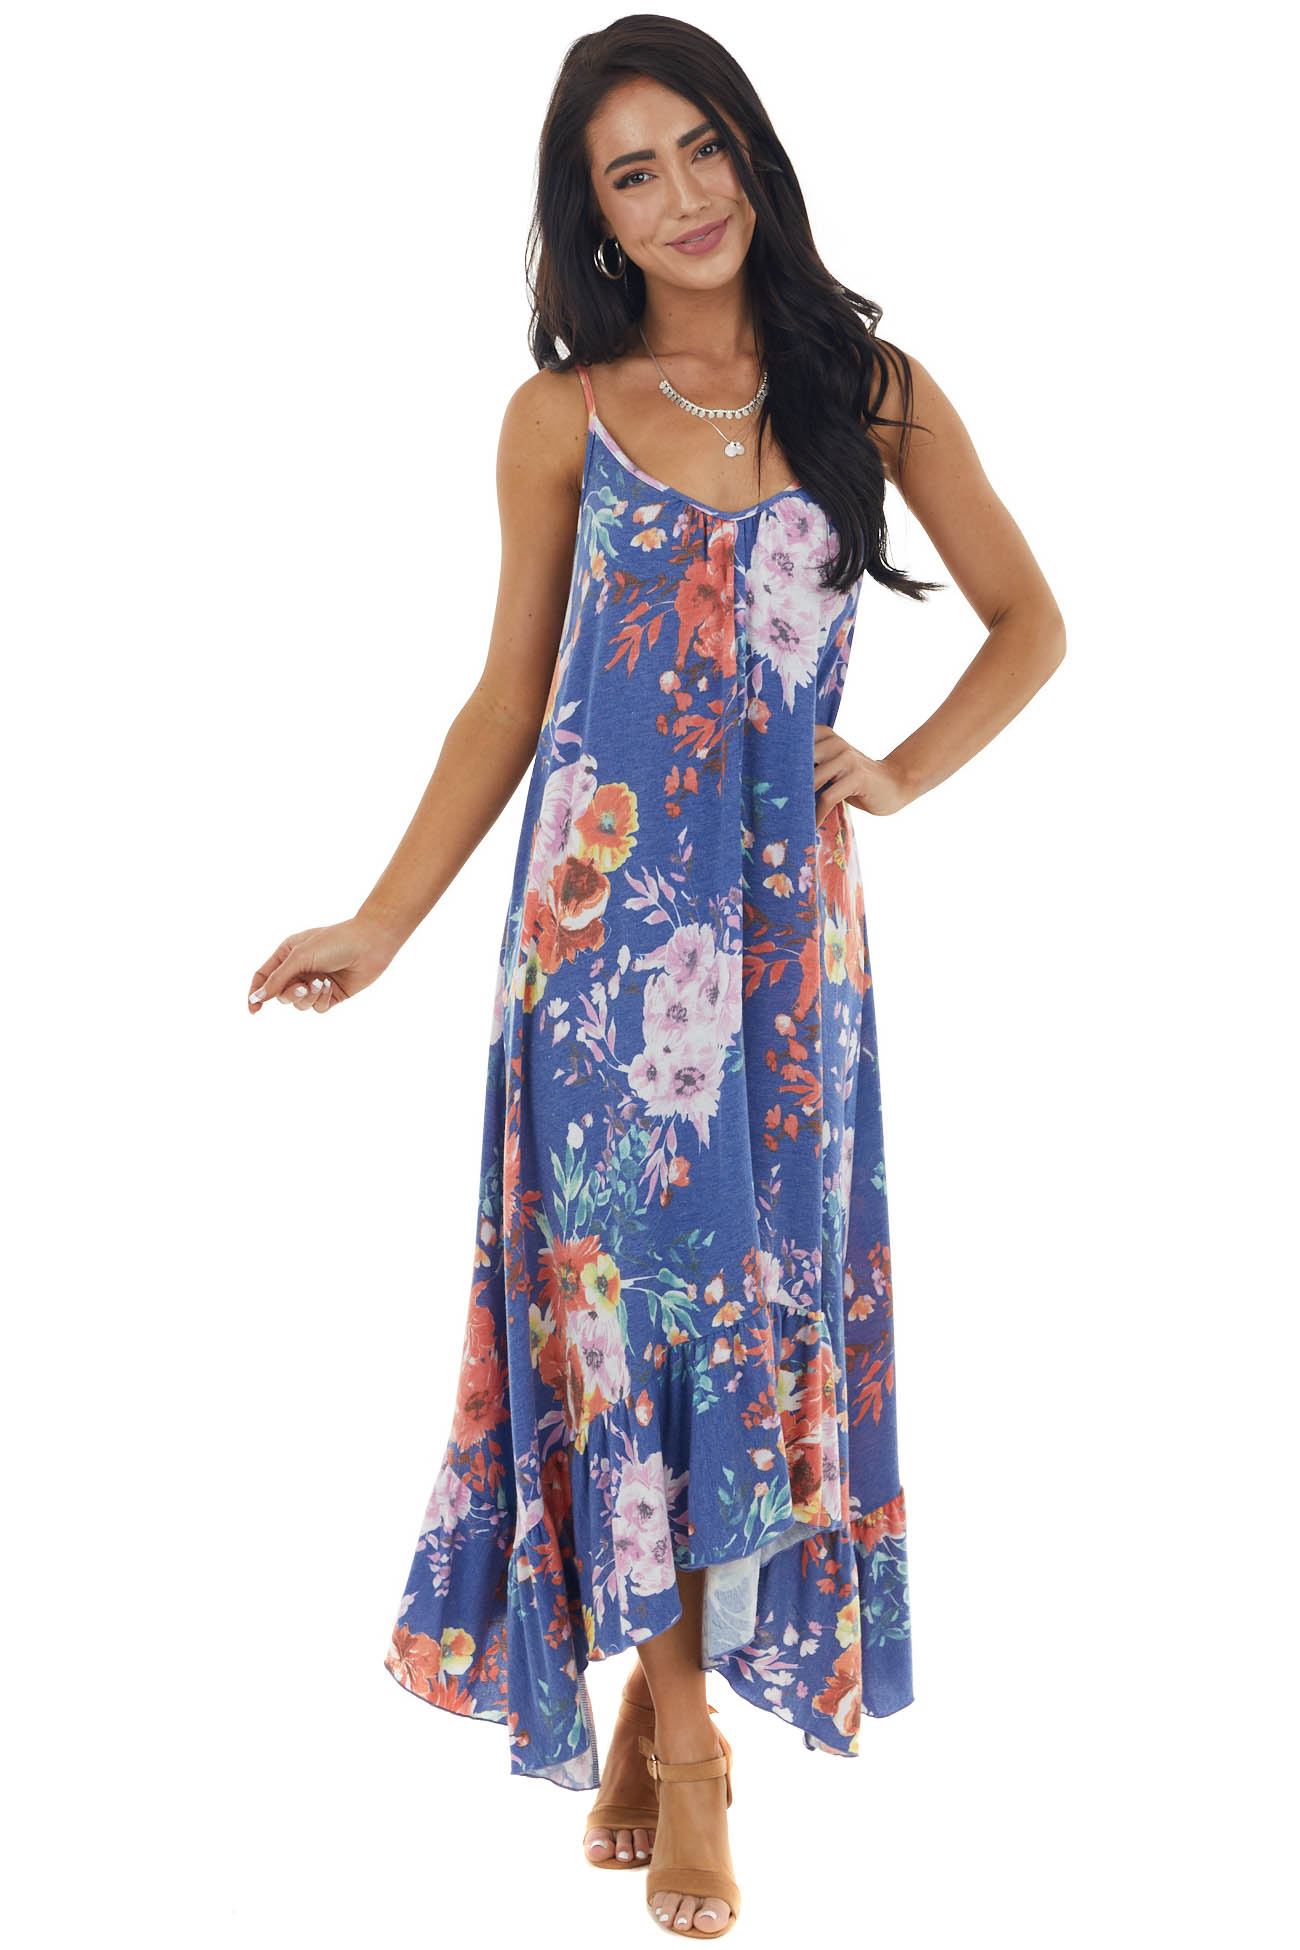 Sapphire Floral Sleeveless Maxi Dress with Rounded V Neck